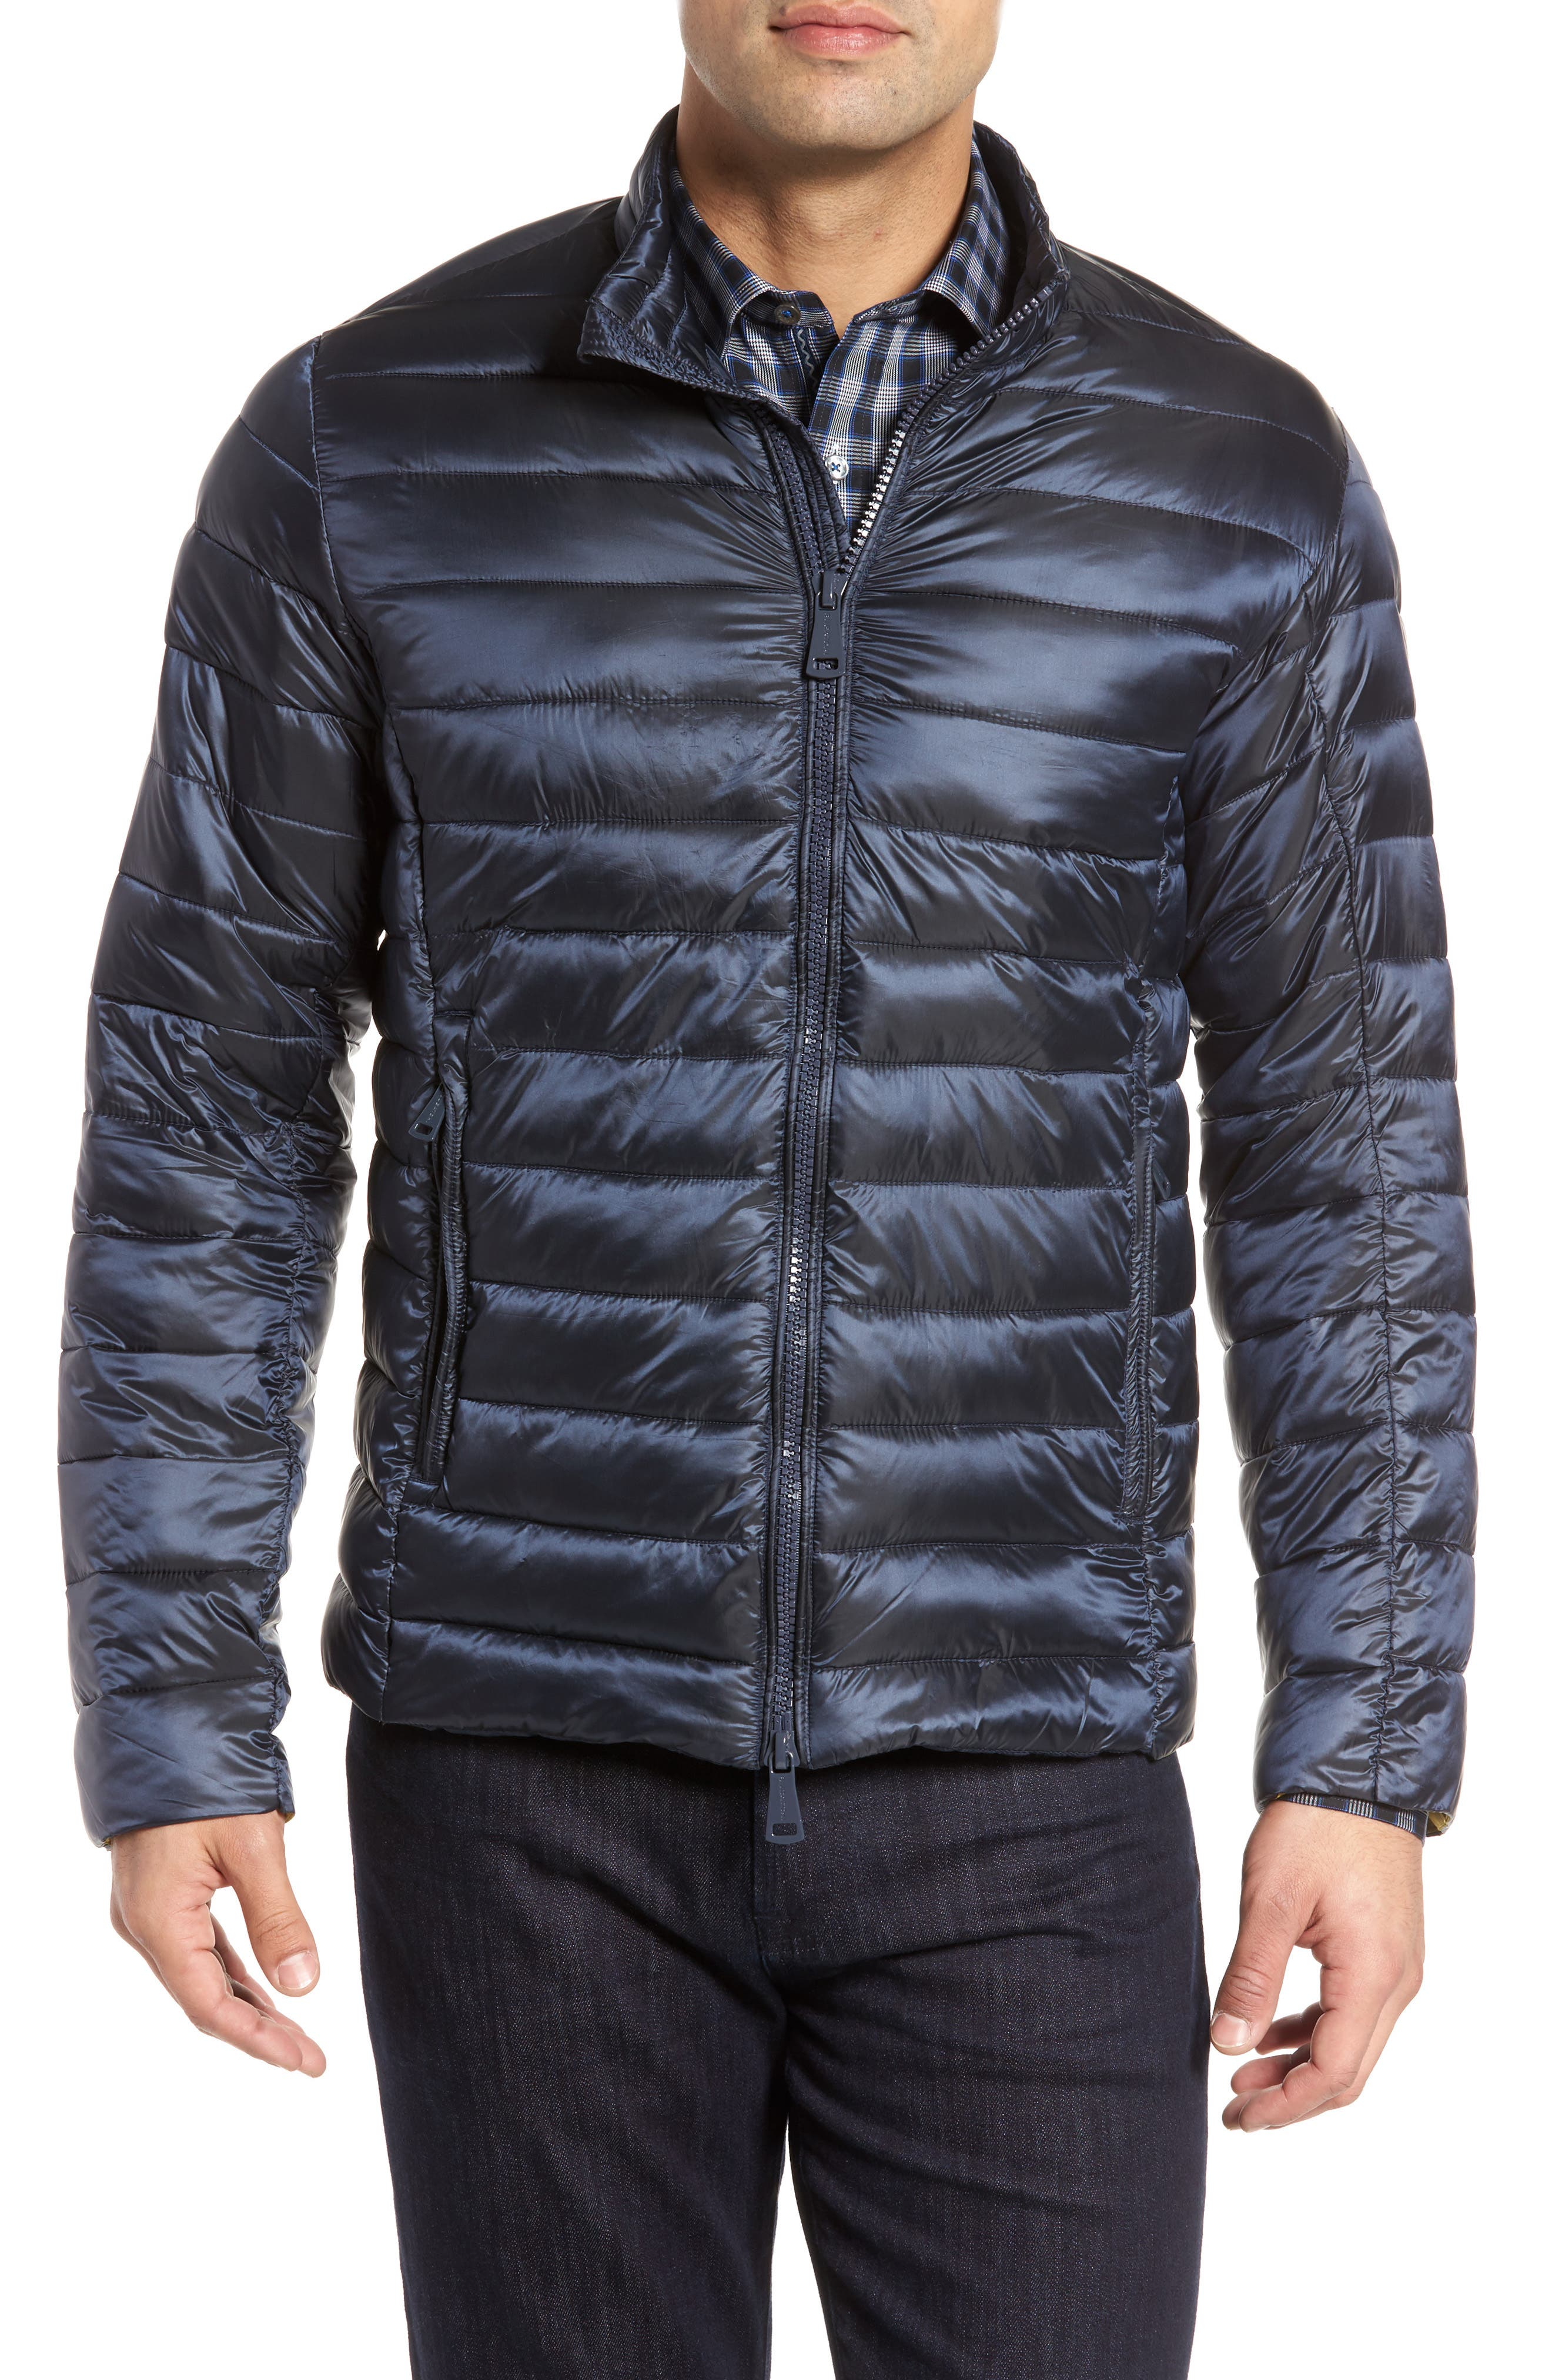 Channel Quilted Jacket,                             Main thumbnail 1, color,                             411